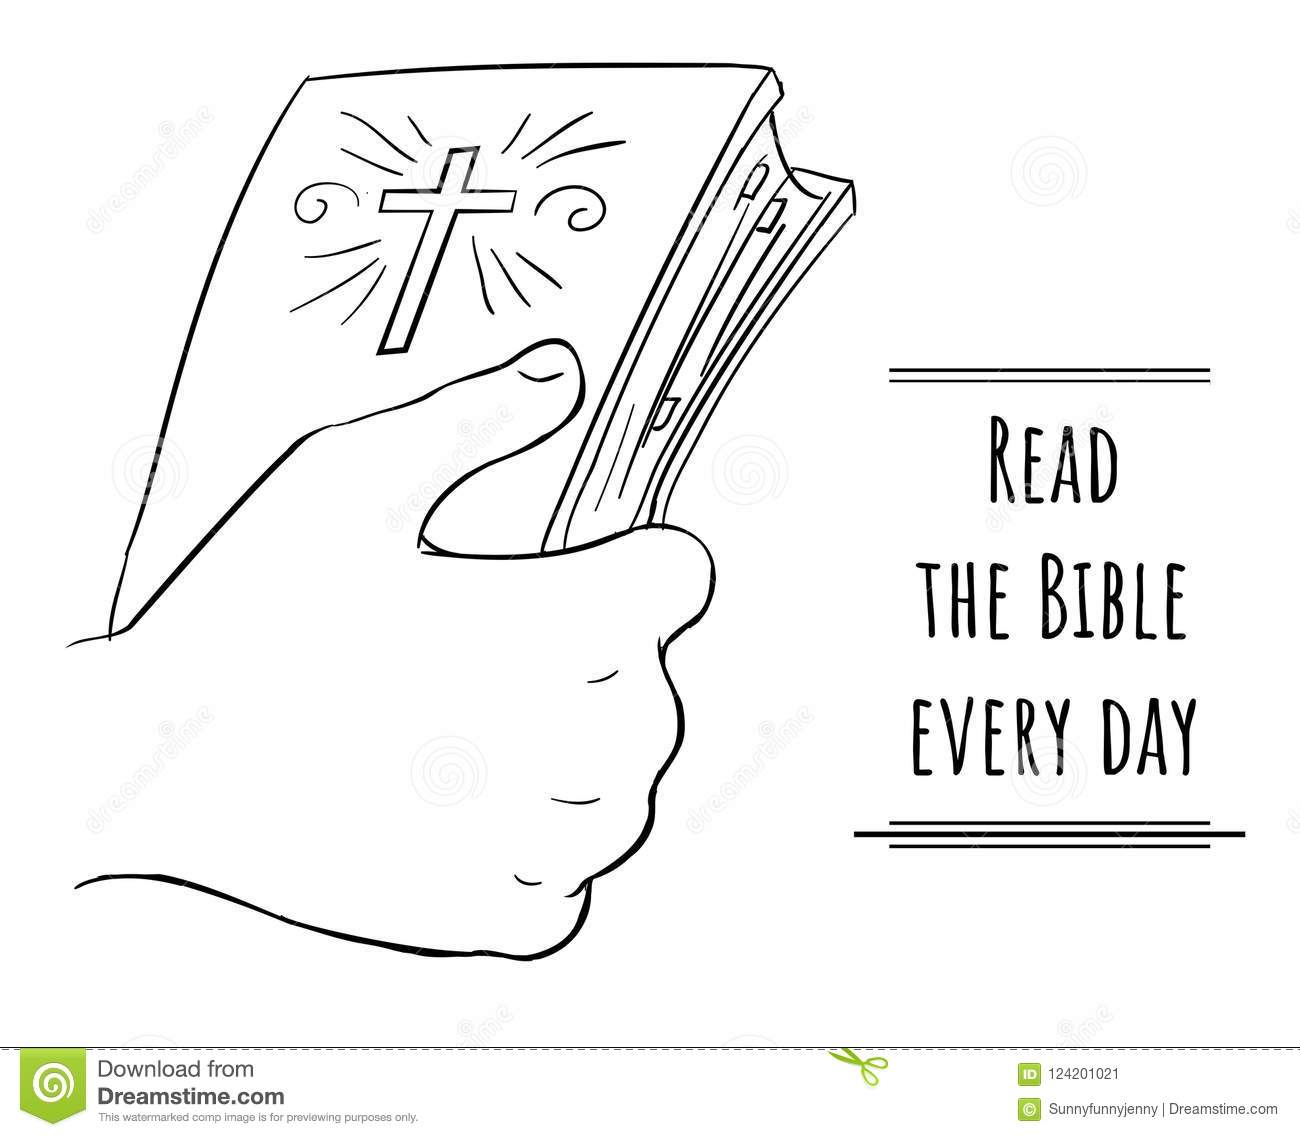 Bible Coloring Stock Illustrations 741 Bible Coloring Stock Illustrations Vectors Clipart Dreamstime